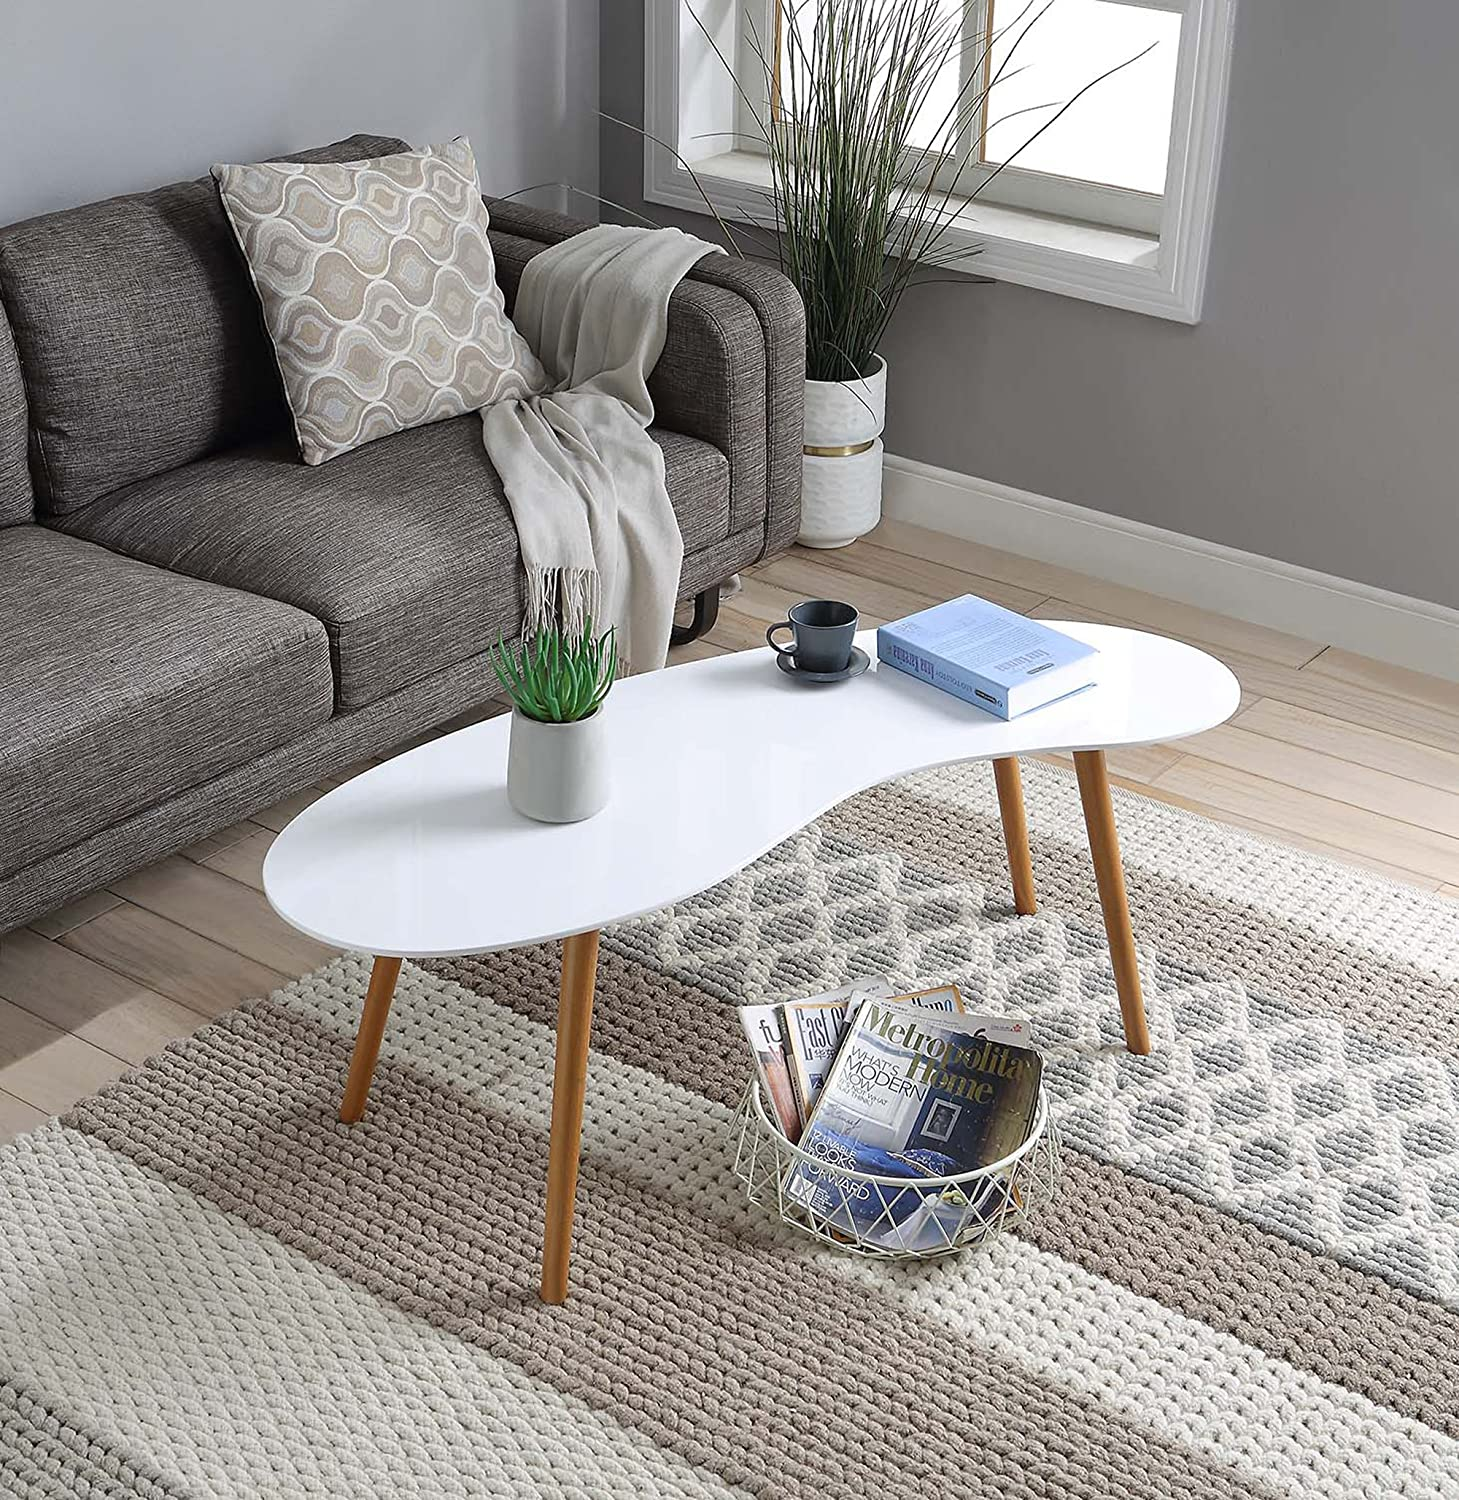 Convenience Concepts Oslo Bean Shaped Coffee Table, White / Bamboo